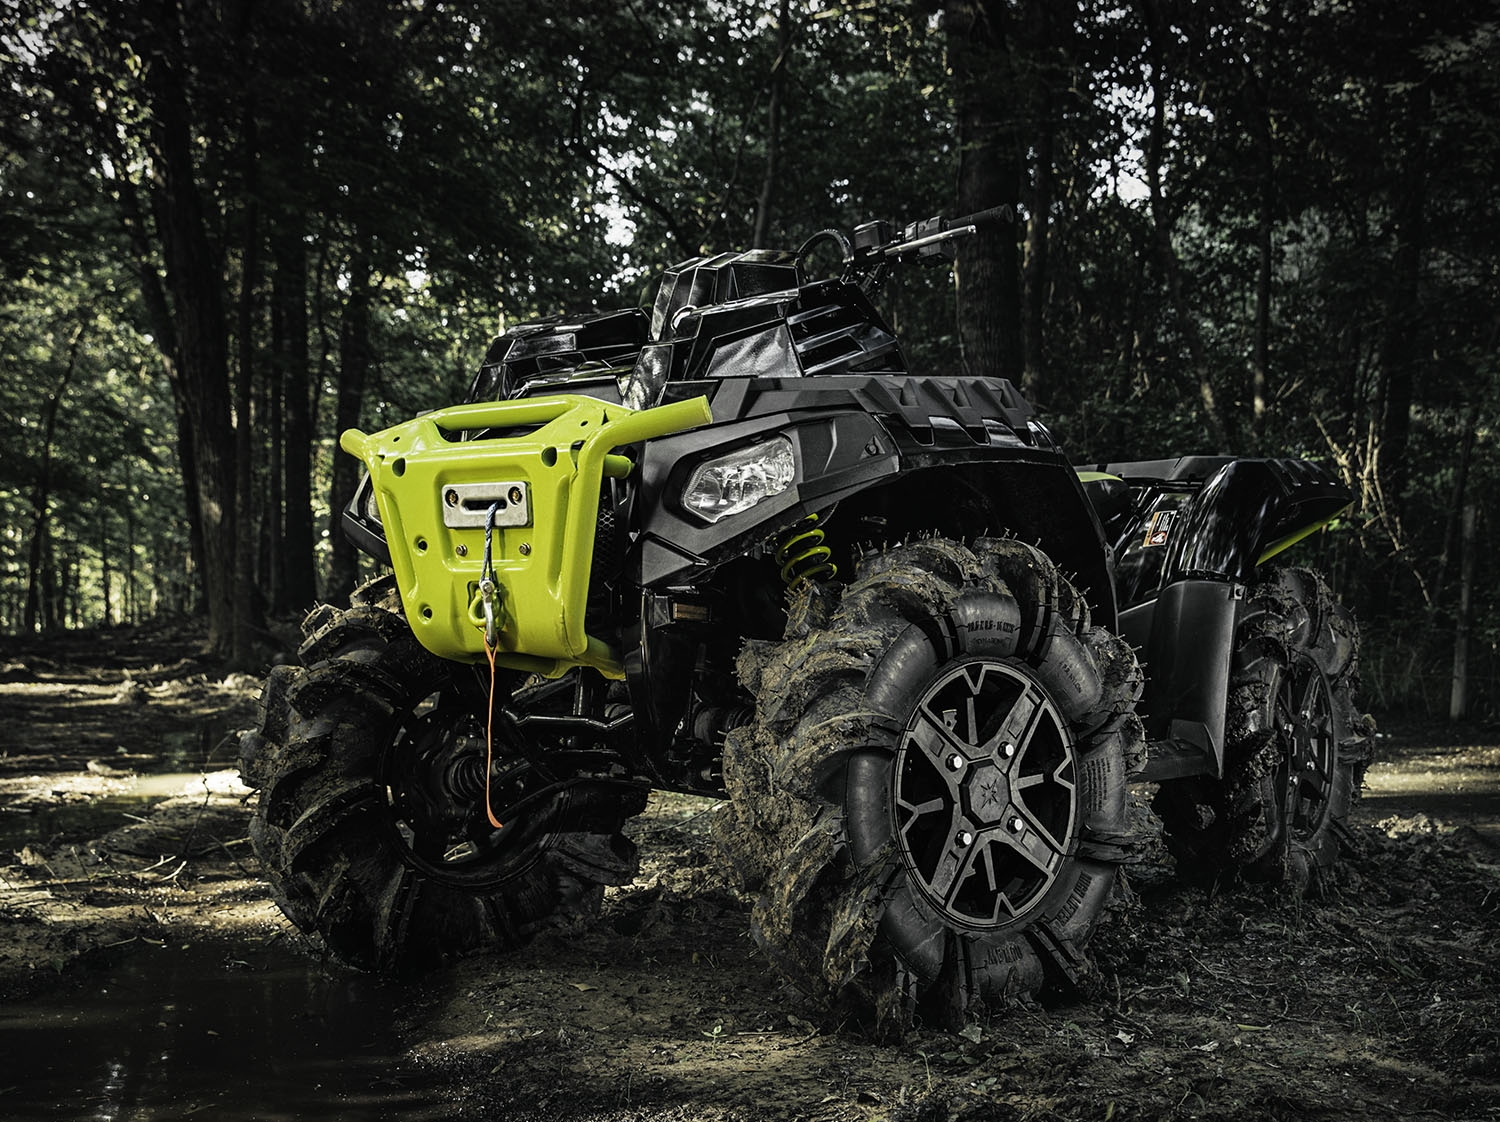 2020-sportsman-xp-1000-high-lifter-onyx-black_3